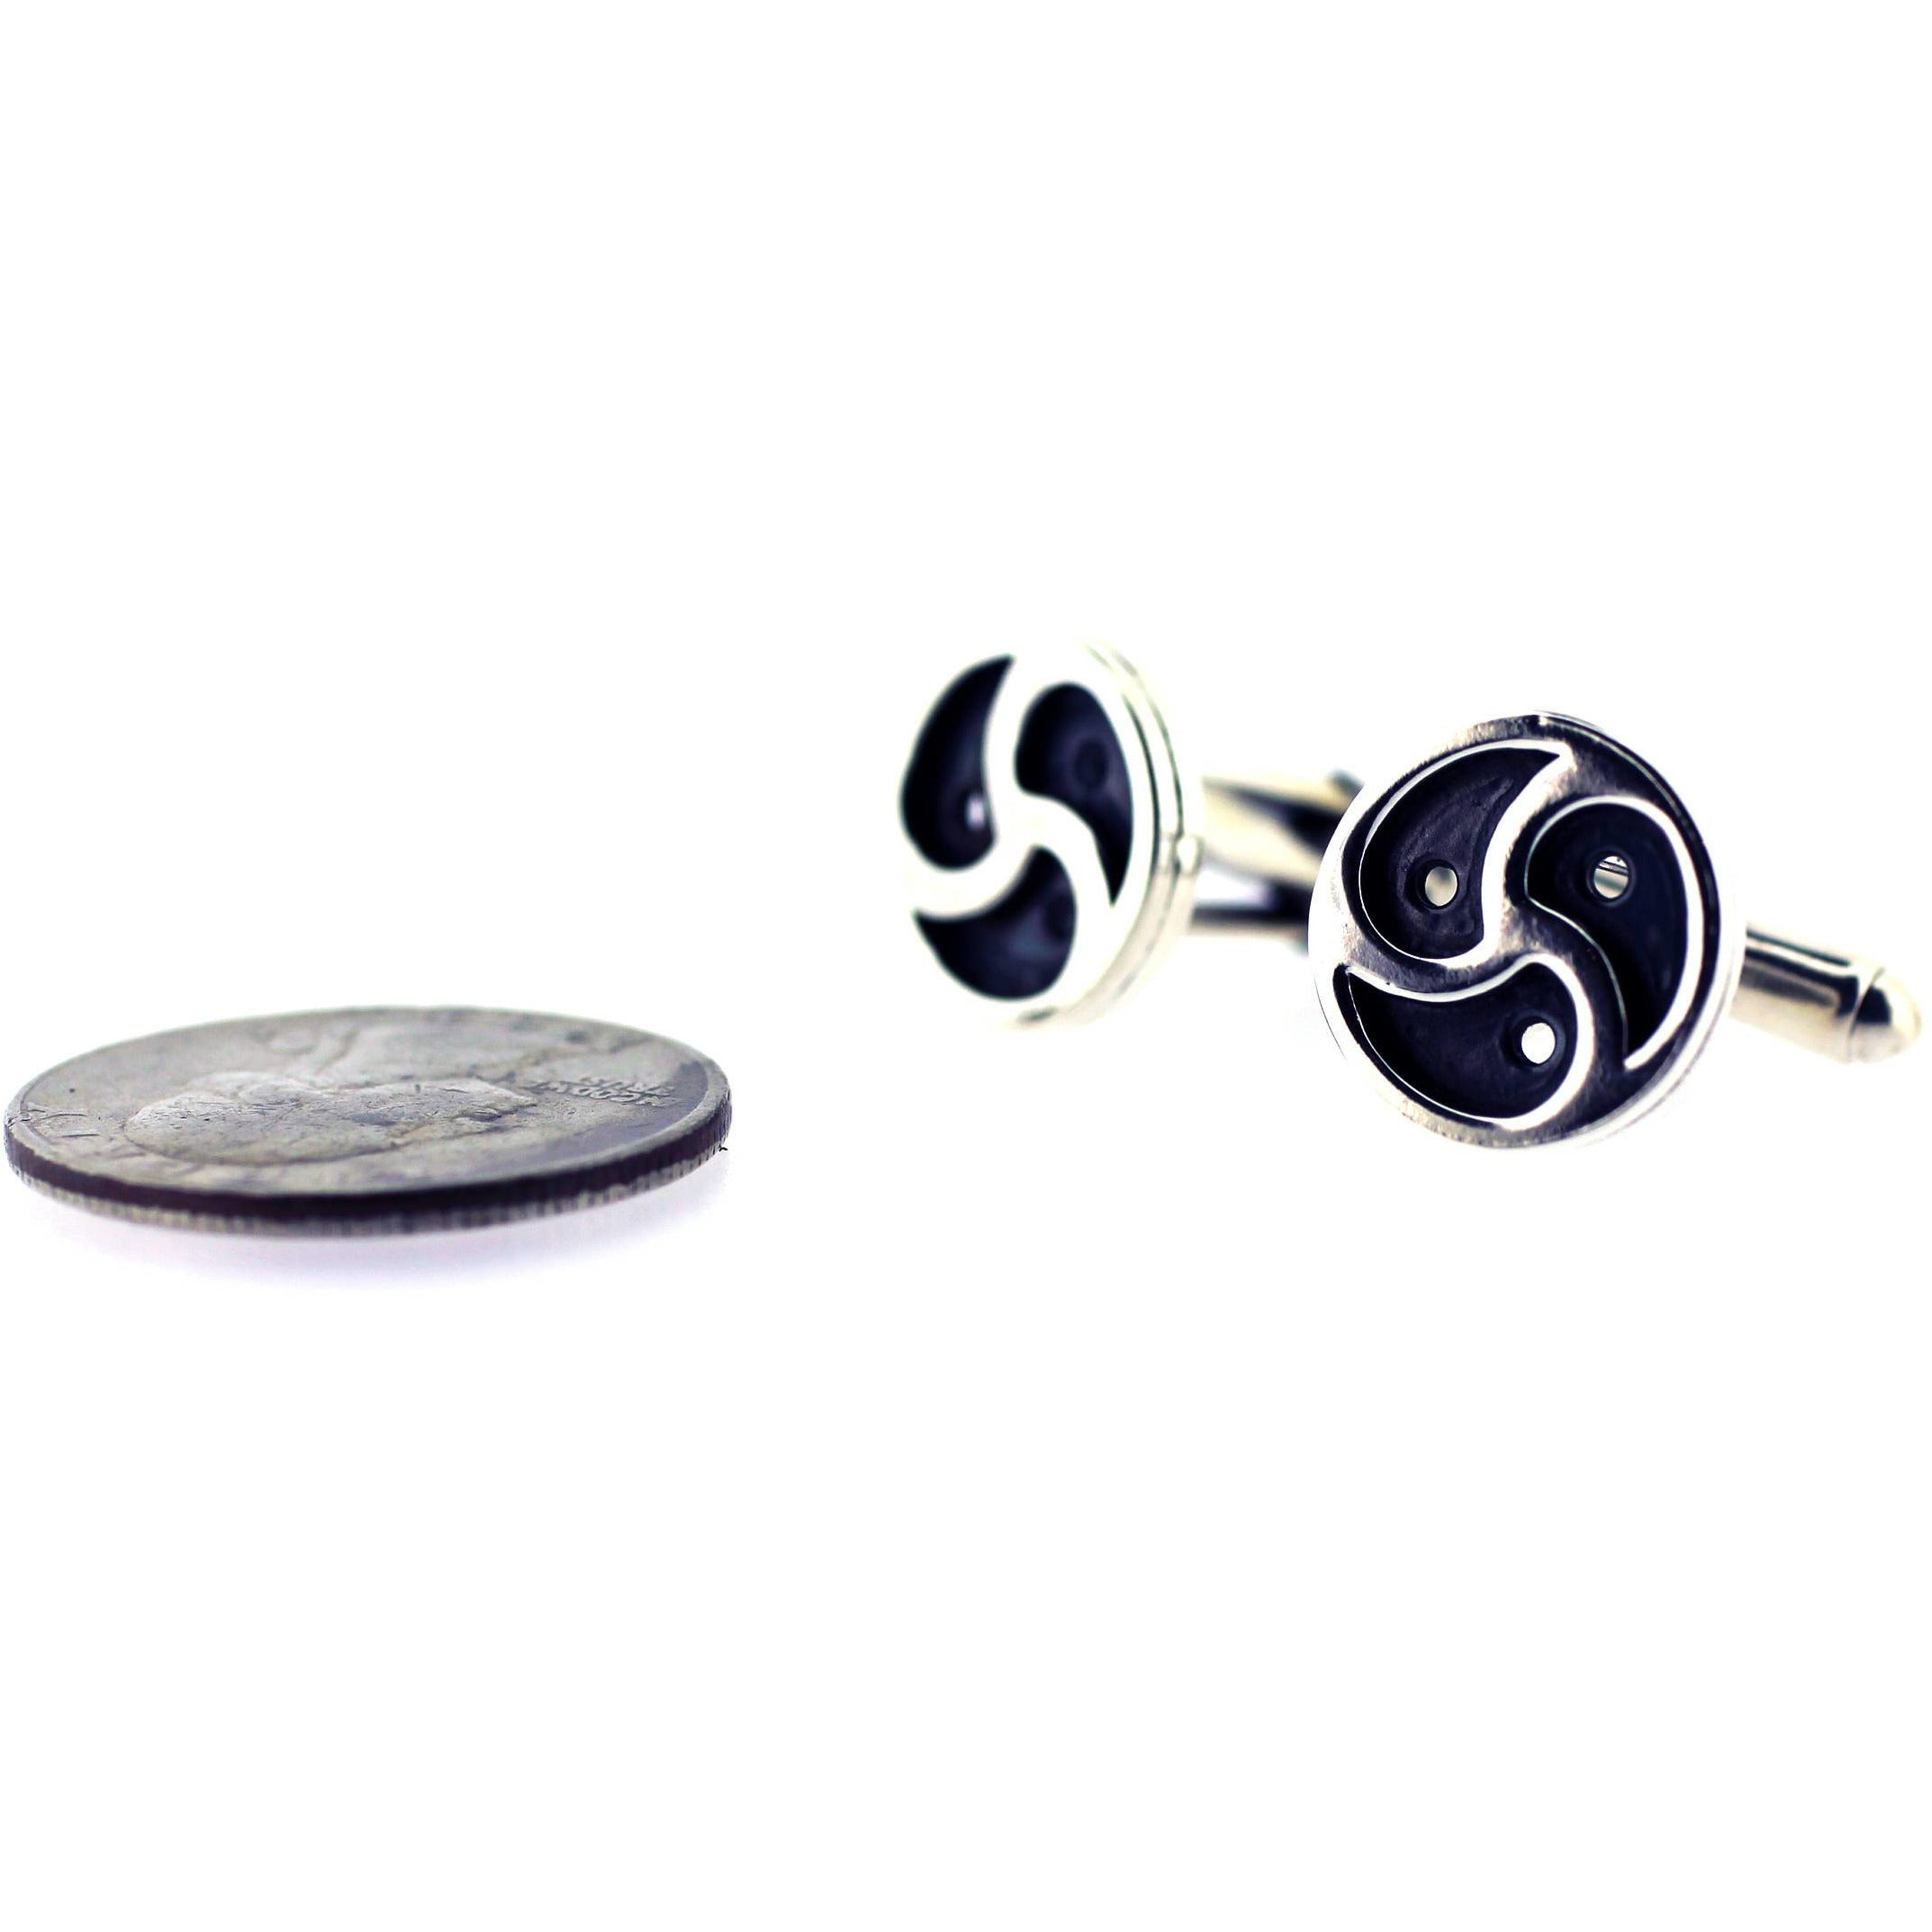 Sterling Silver Bdsm Symbol/Emblem Cufflinks 15mm